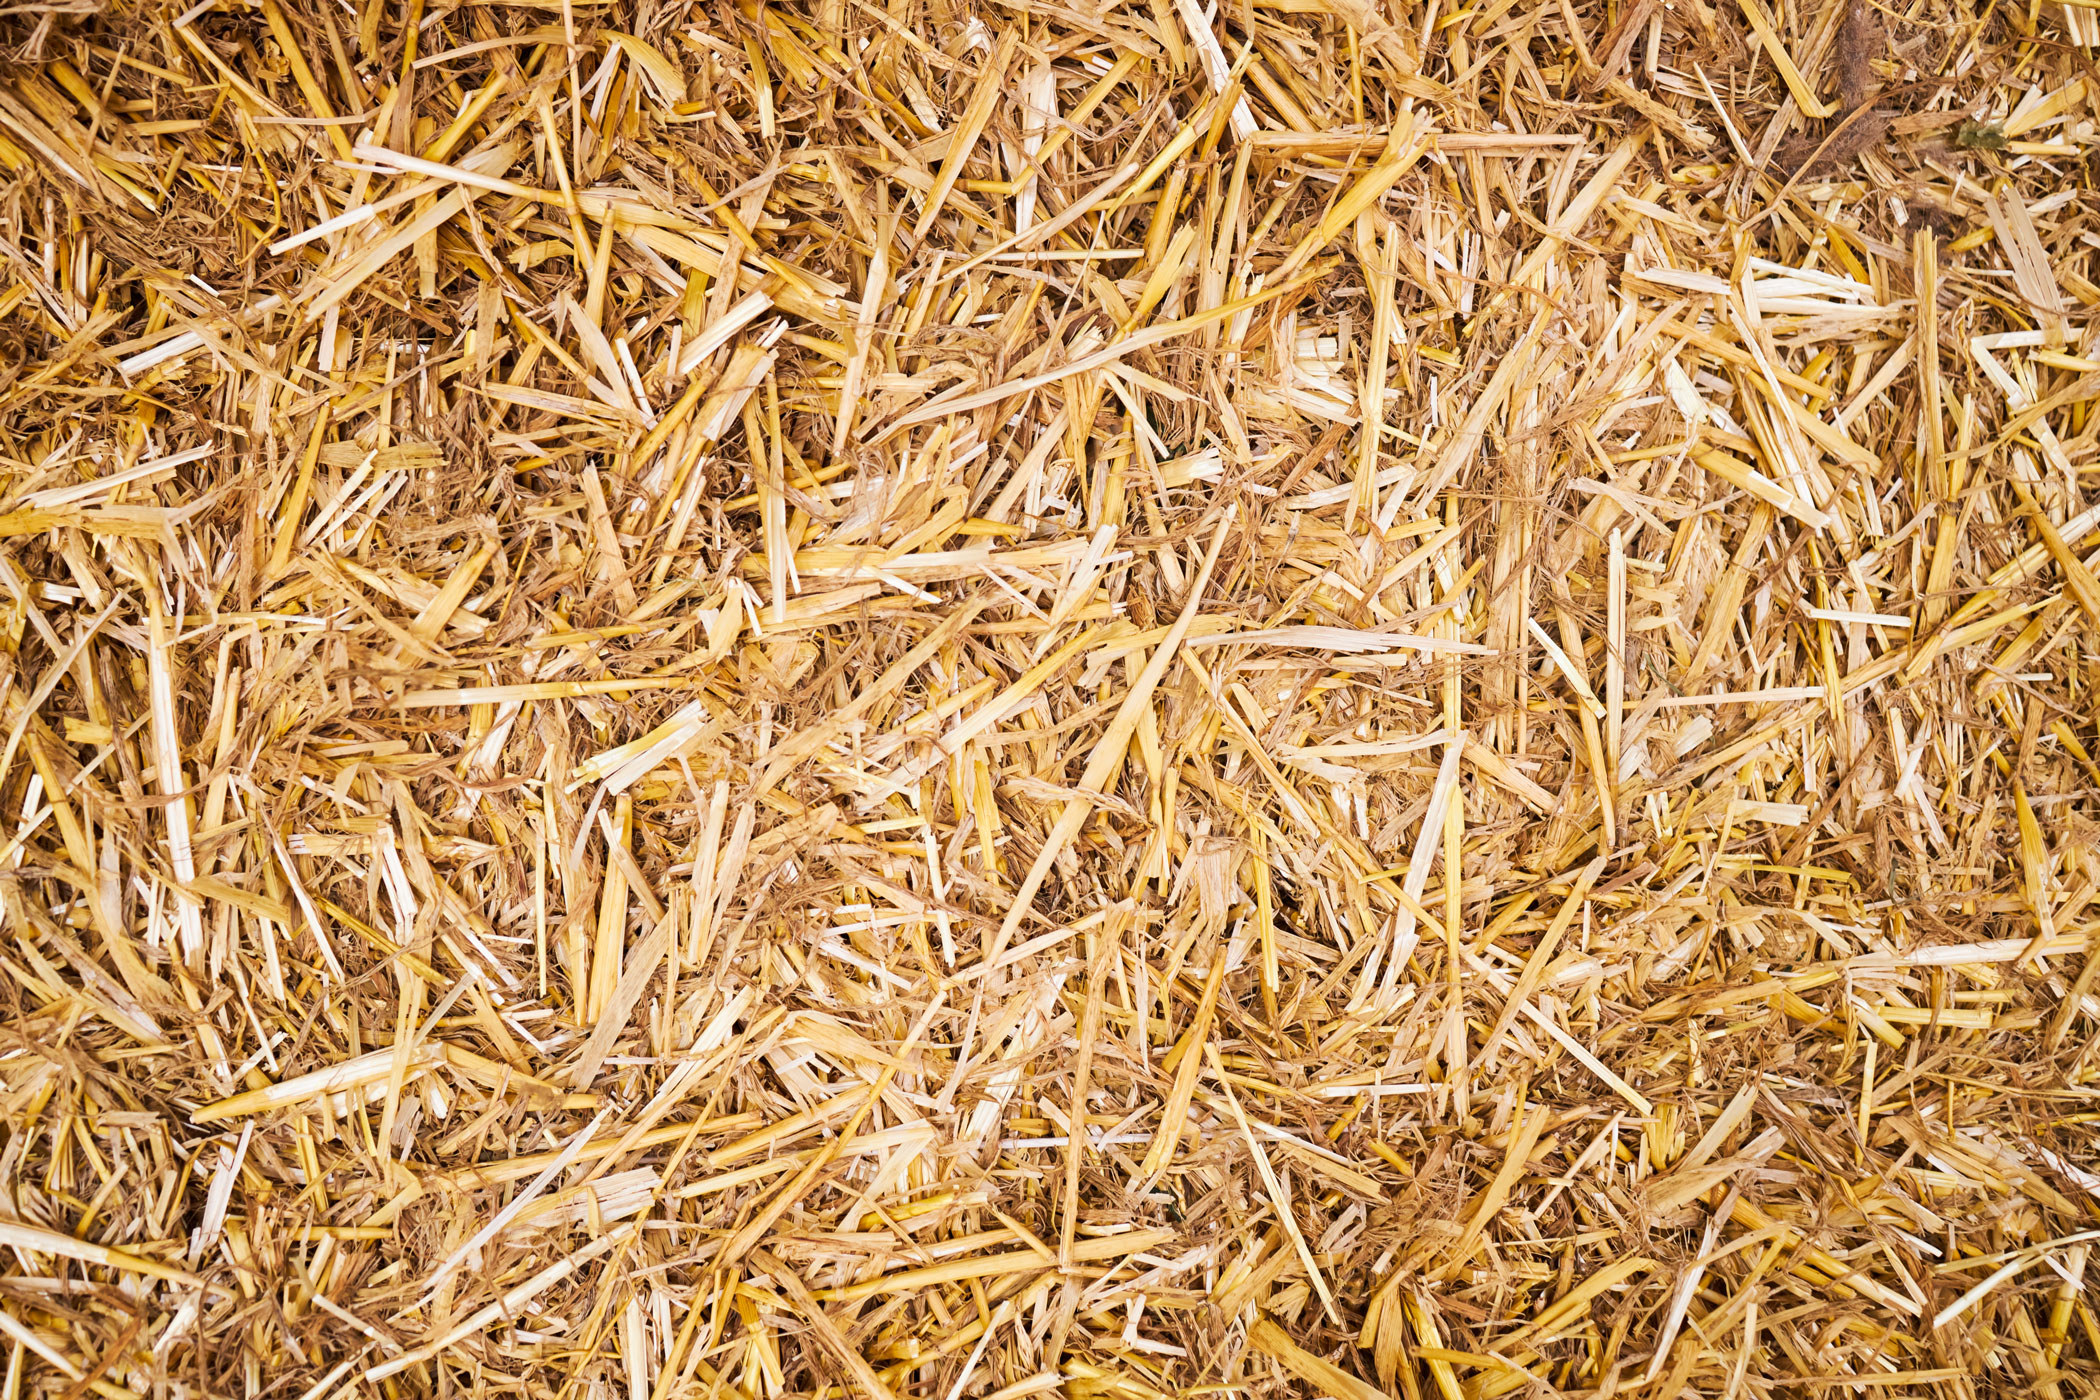 Grains such as wheat, oats and barley before briquetting